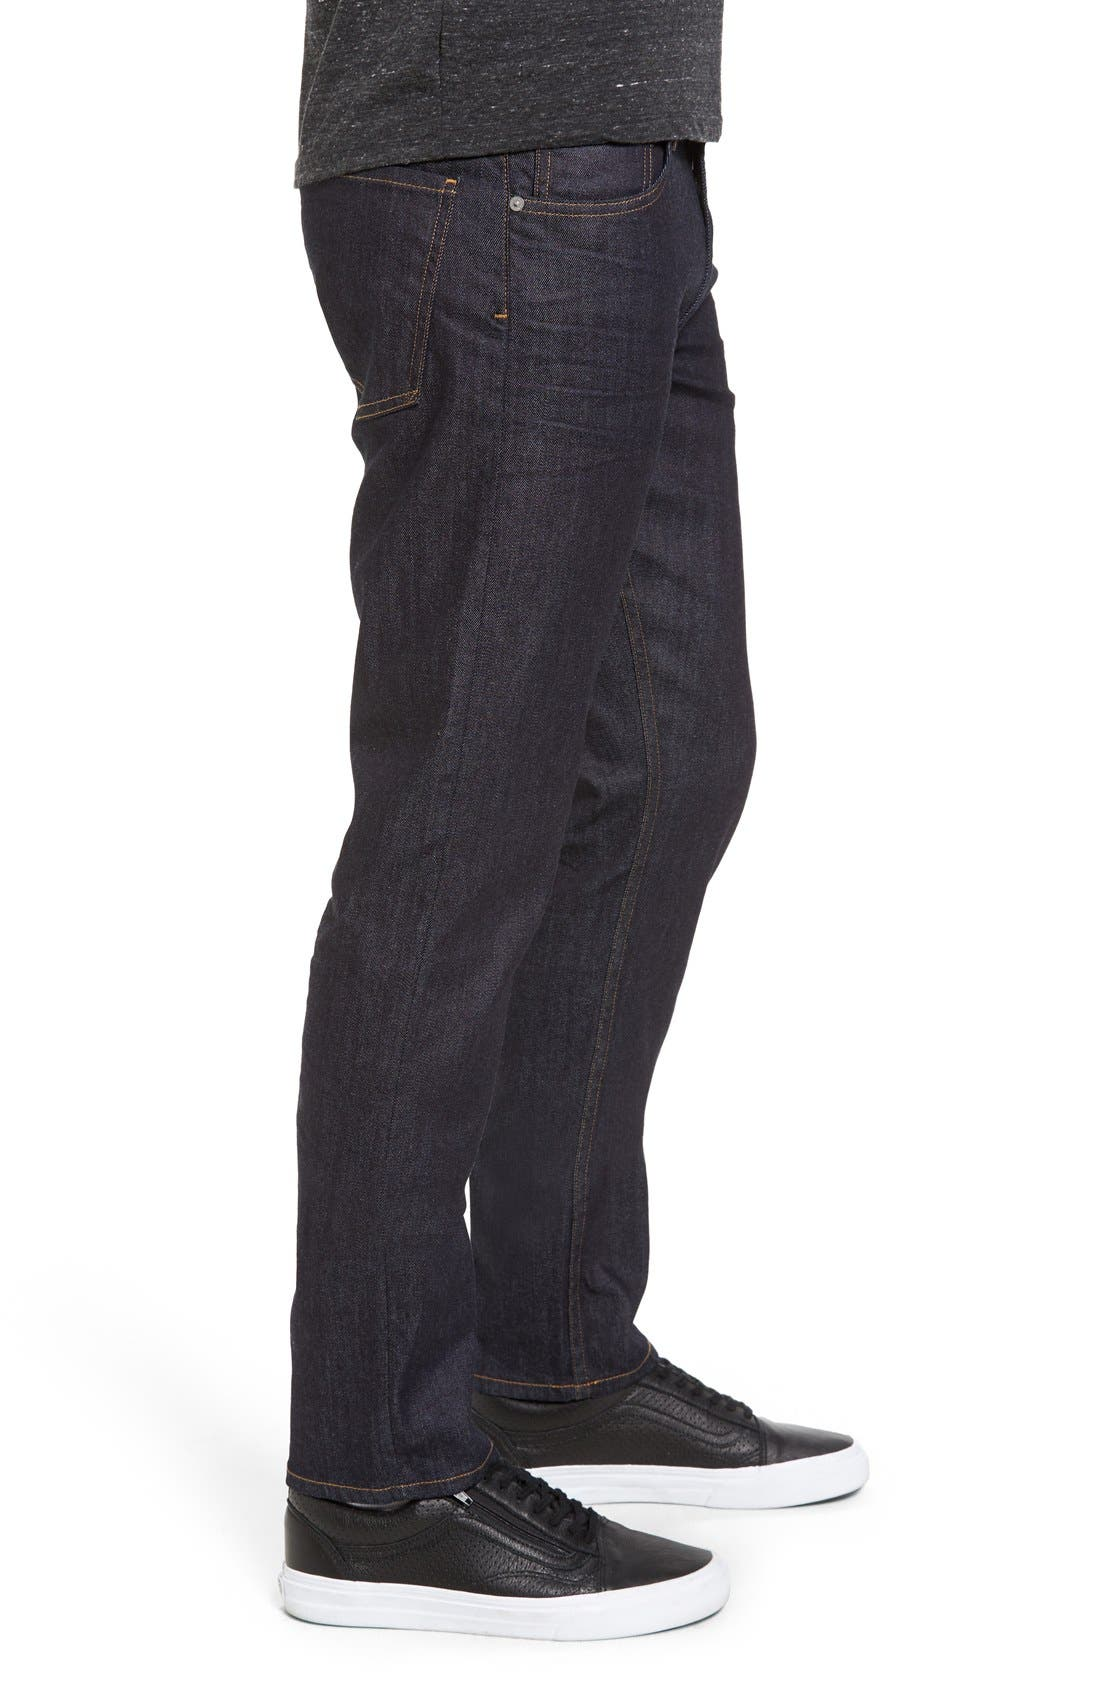 Bowery Slim Fit Jeans,                             Alternate thumbnail 10, color,                             432